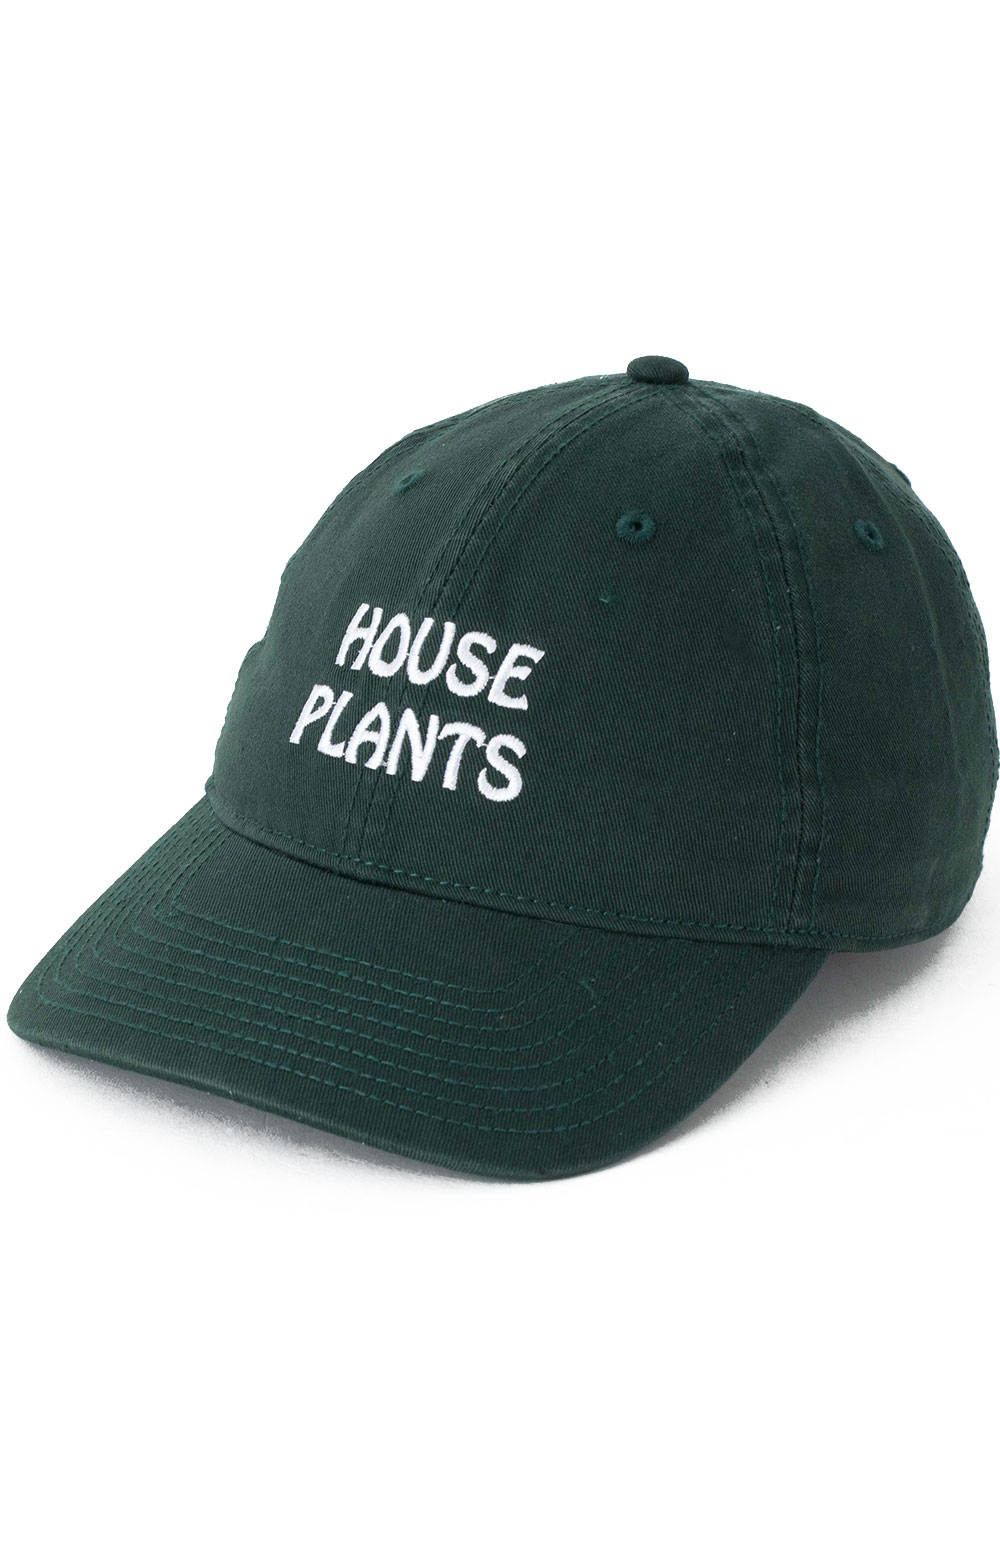 House Plants Dad Hat - Forest Green